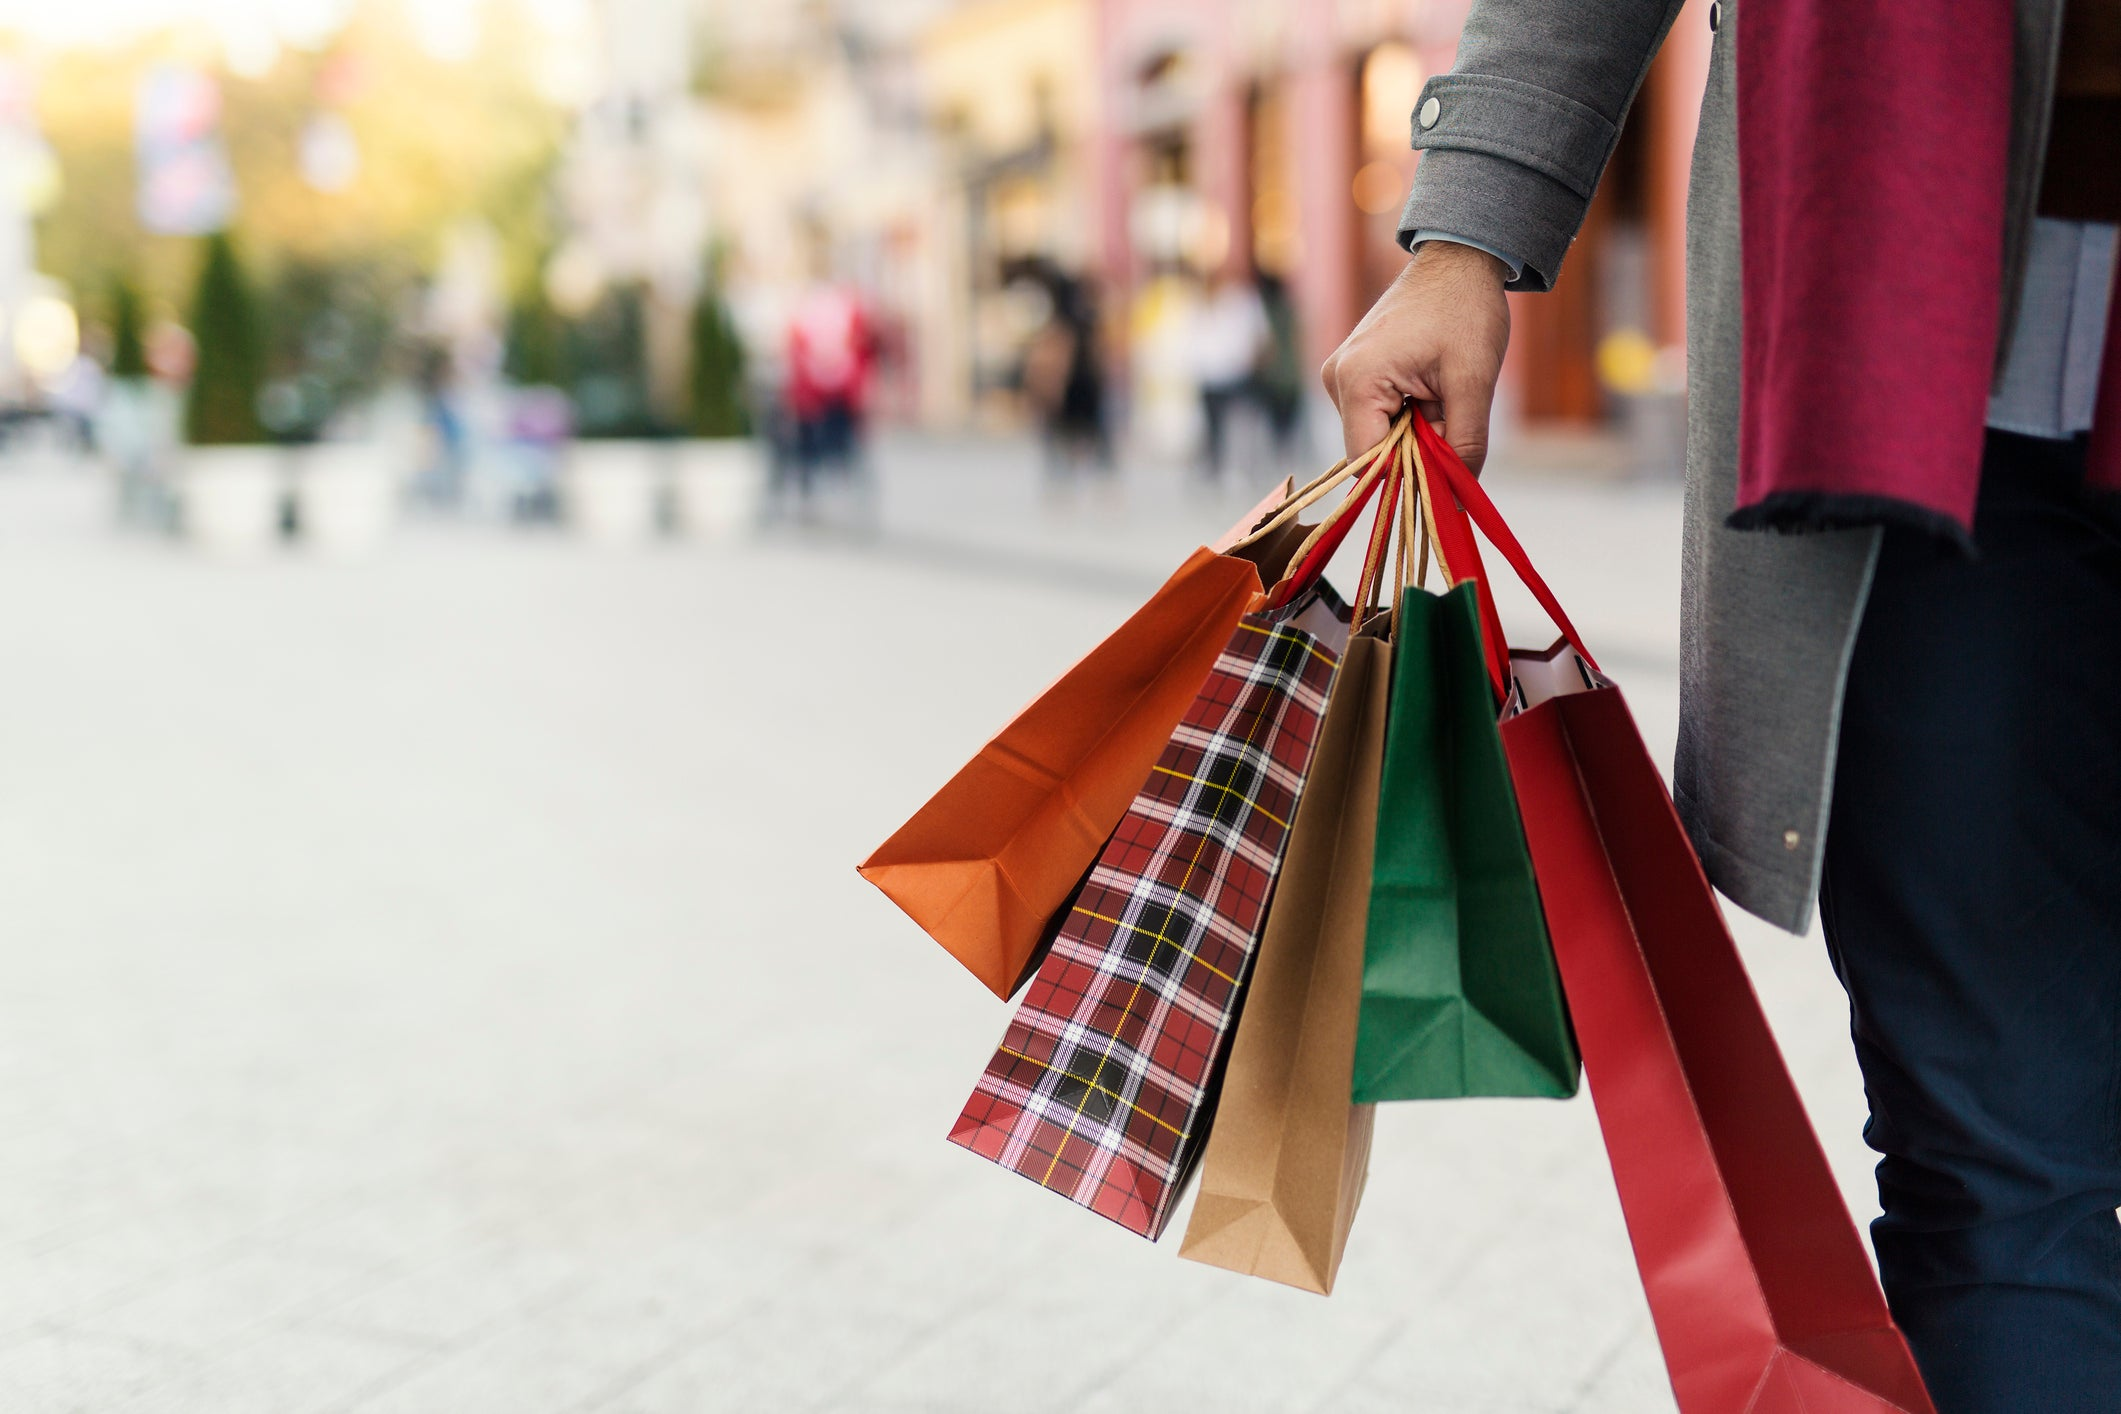 Image of person holding shopping bags.